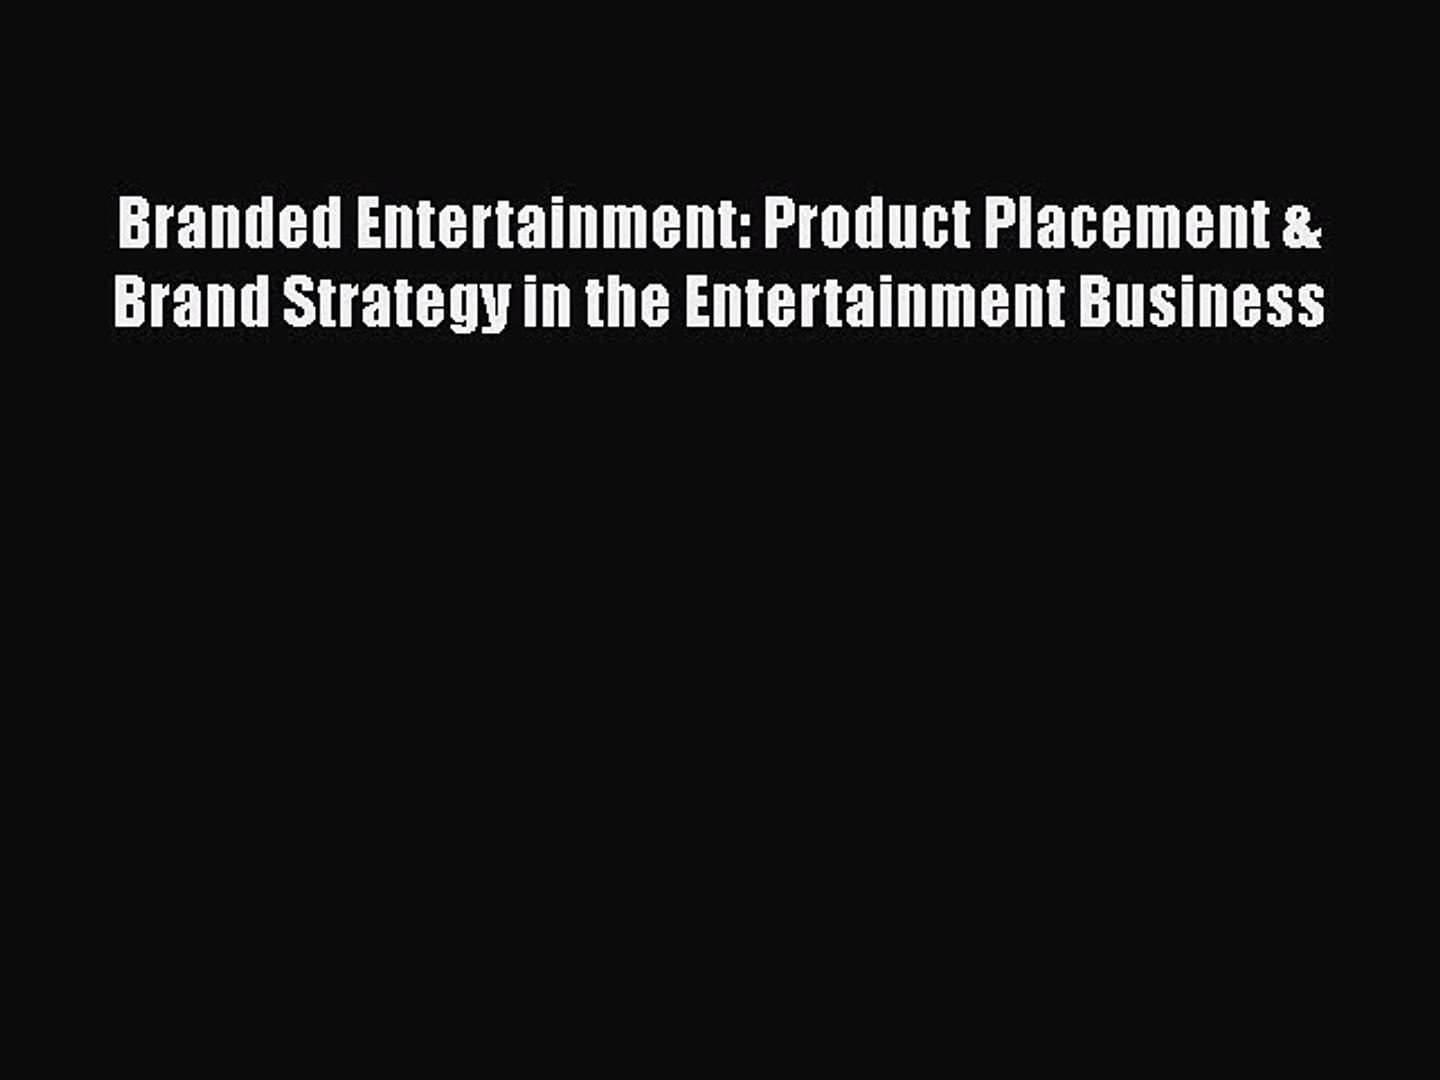 [Read book] Branded Entertainment: Product Placement & Brand Strategy in the Entertainment